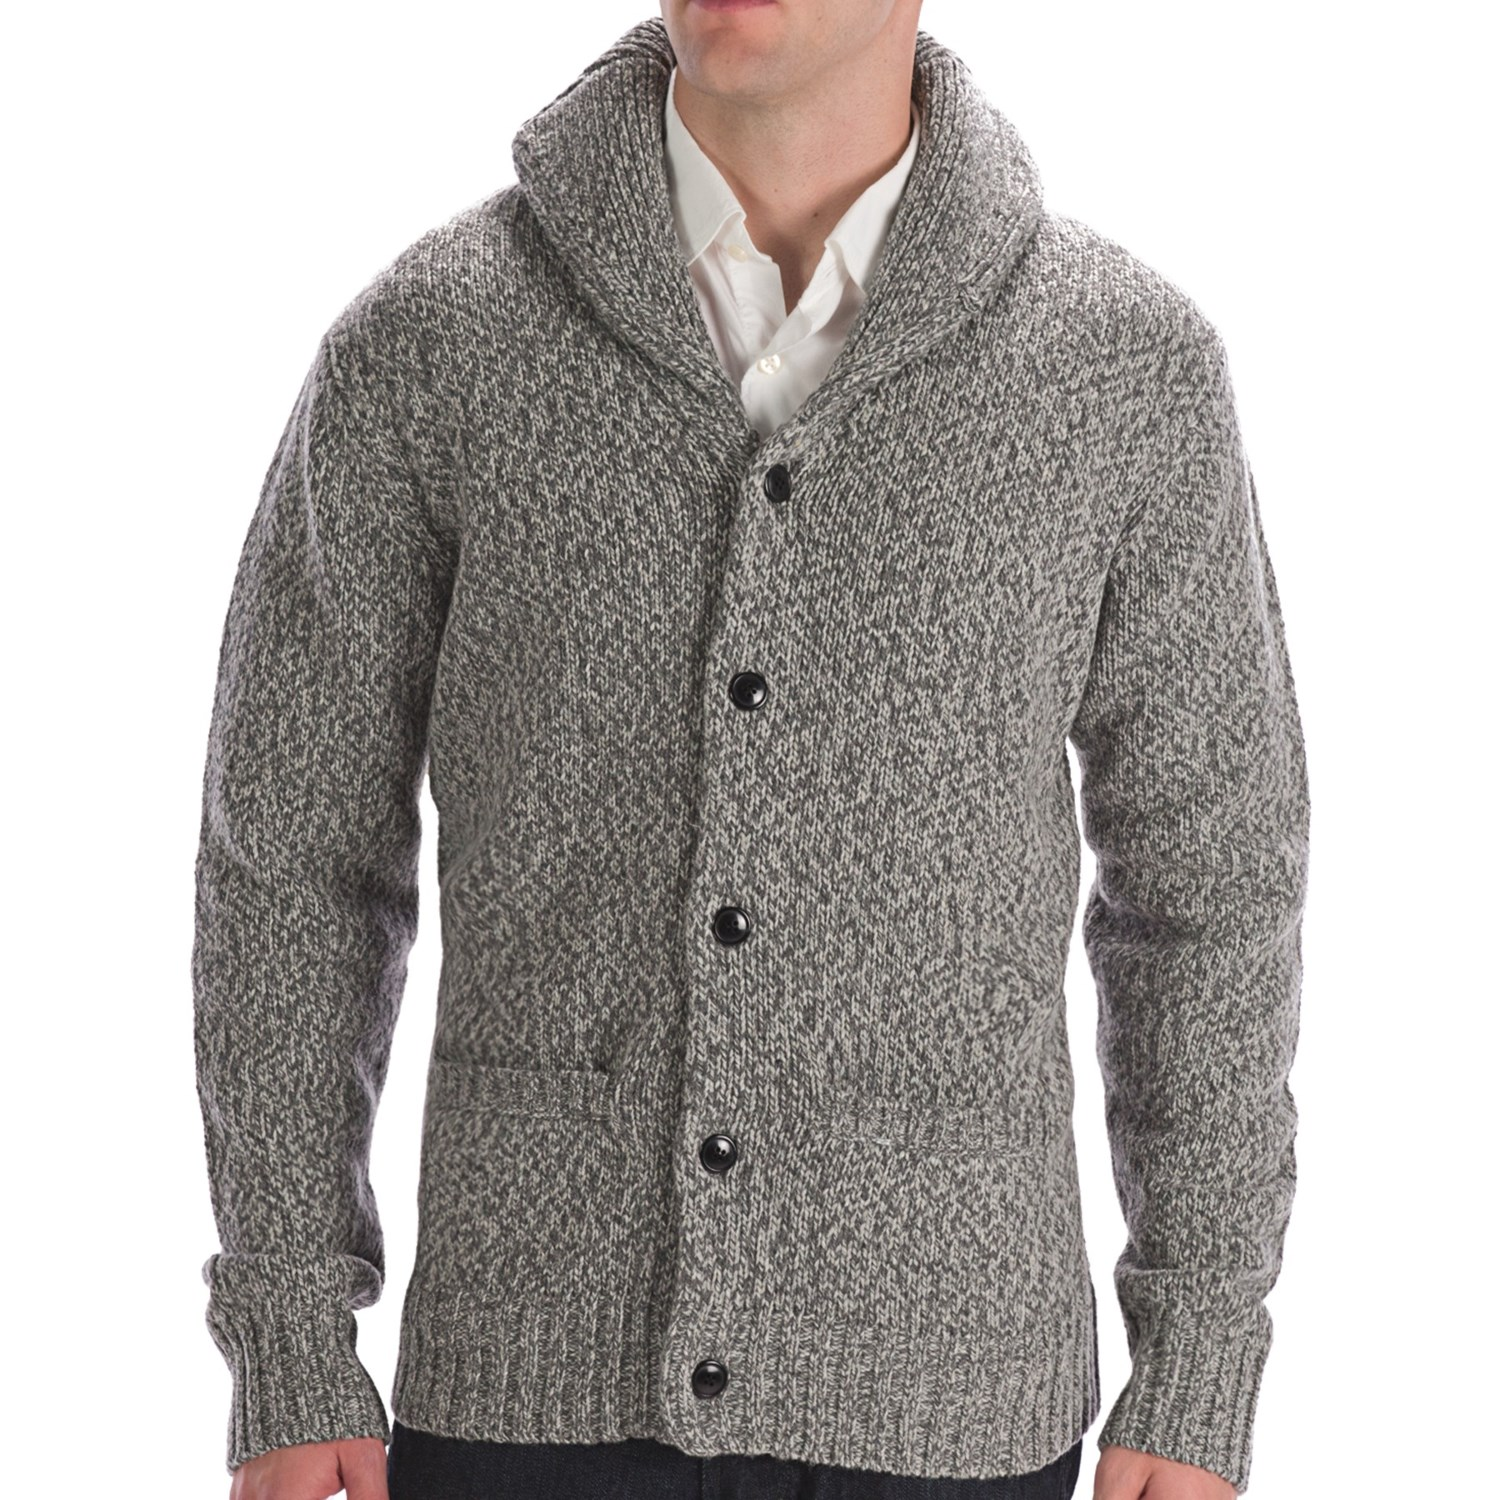 Free shipping on shawl collar sweaters for men at fascinatingnewsvv.ml Shop cashmere, wool & cotton sweaters in regular & trim fits. Totally free shipping & returns.